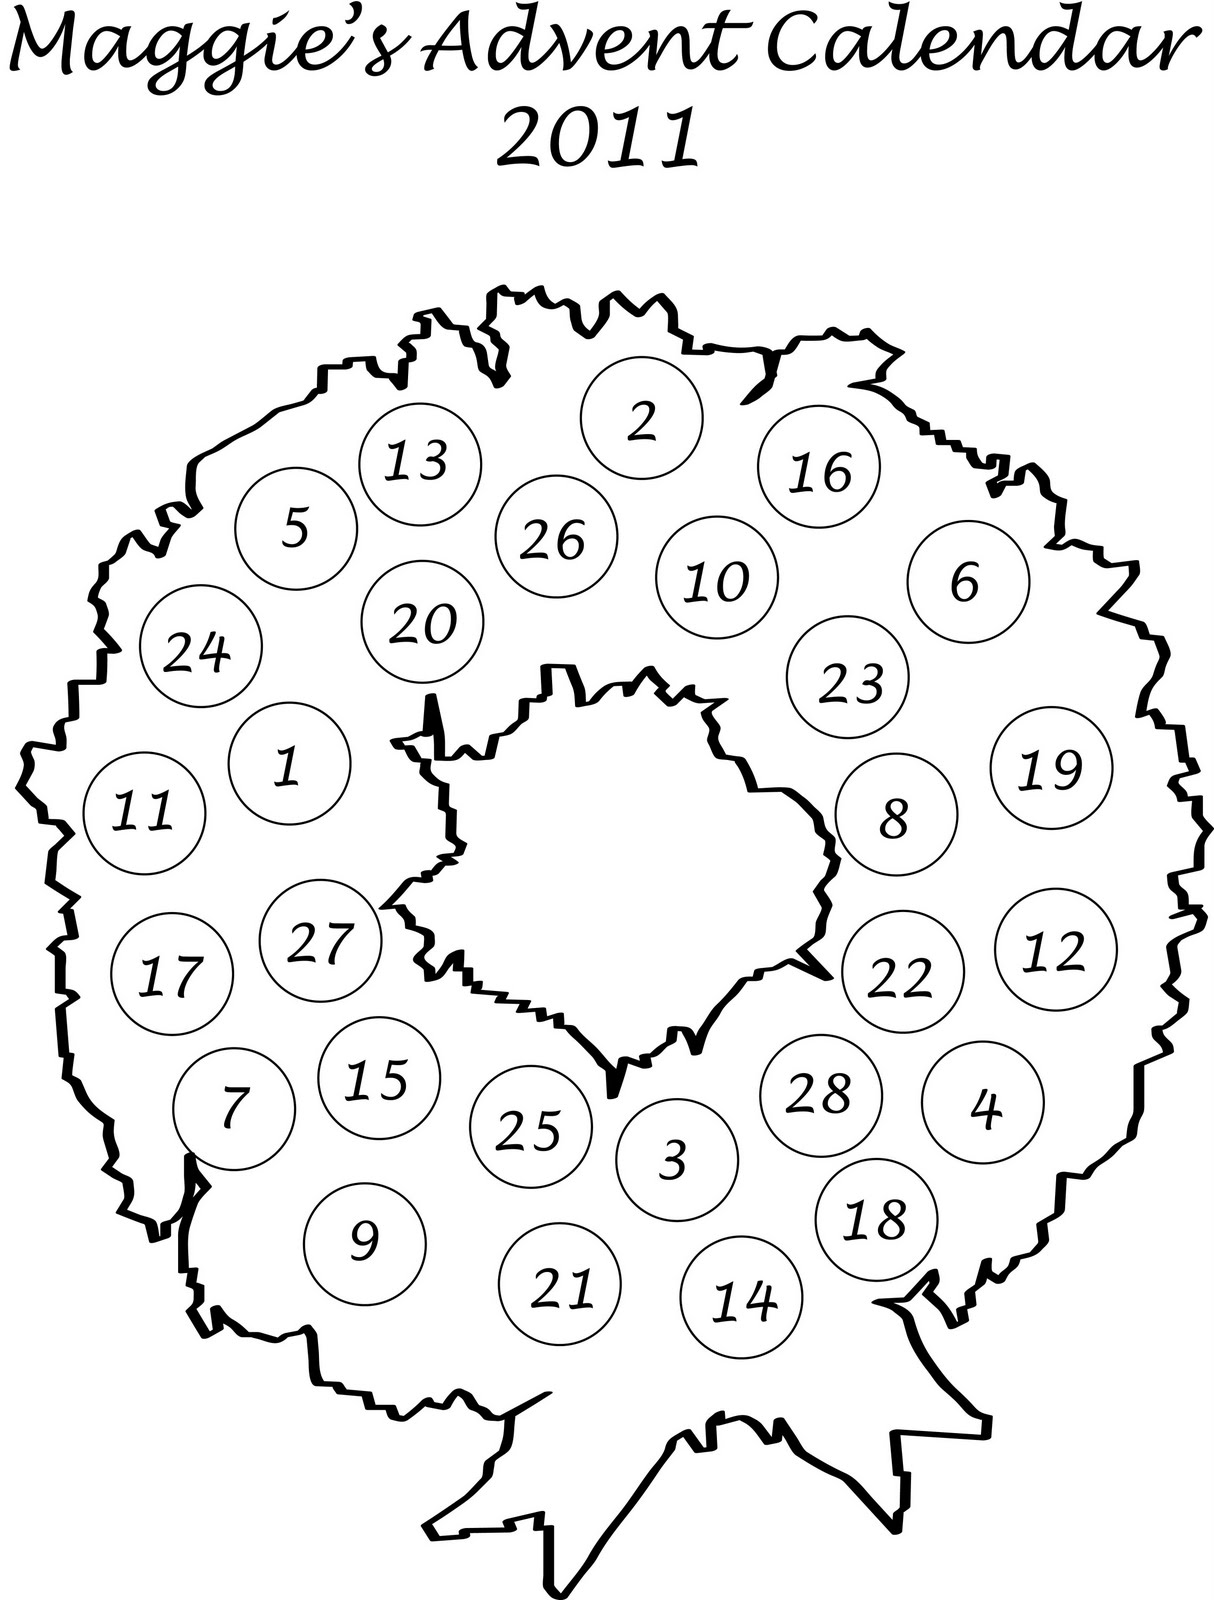 Paper Advent Wreath Template | Search Results | Calendar 2015